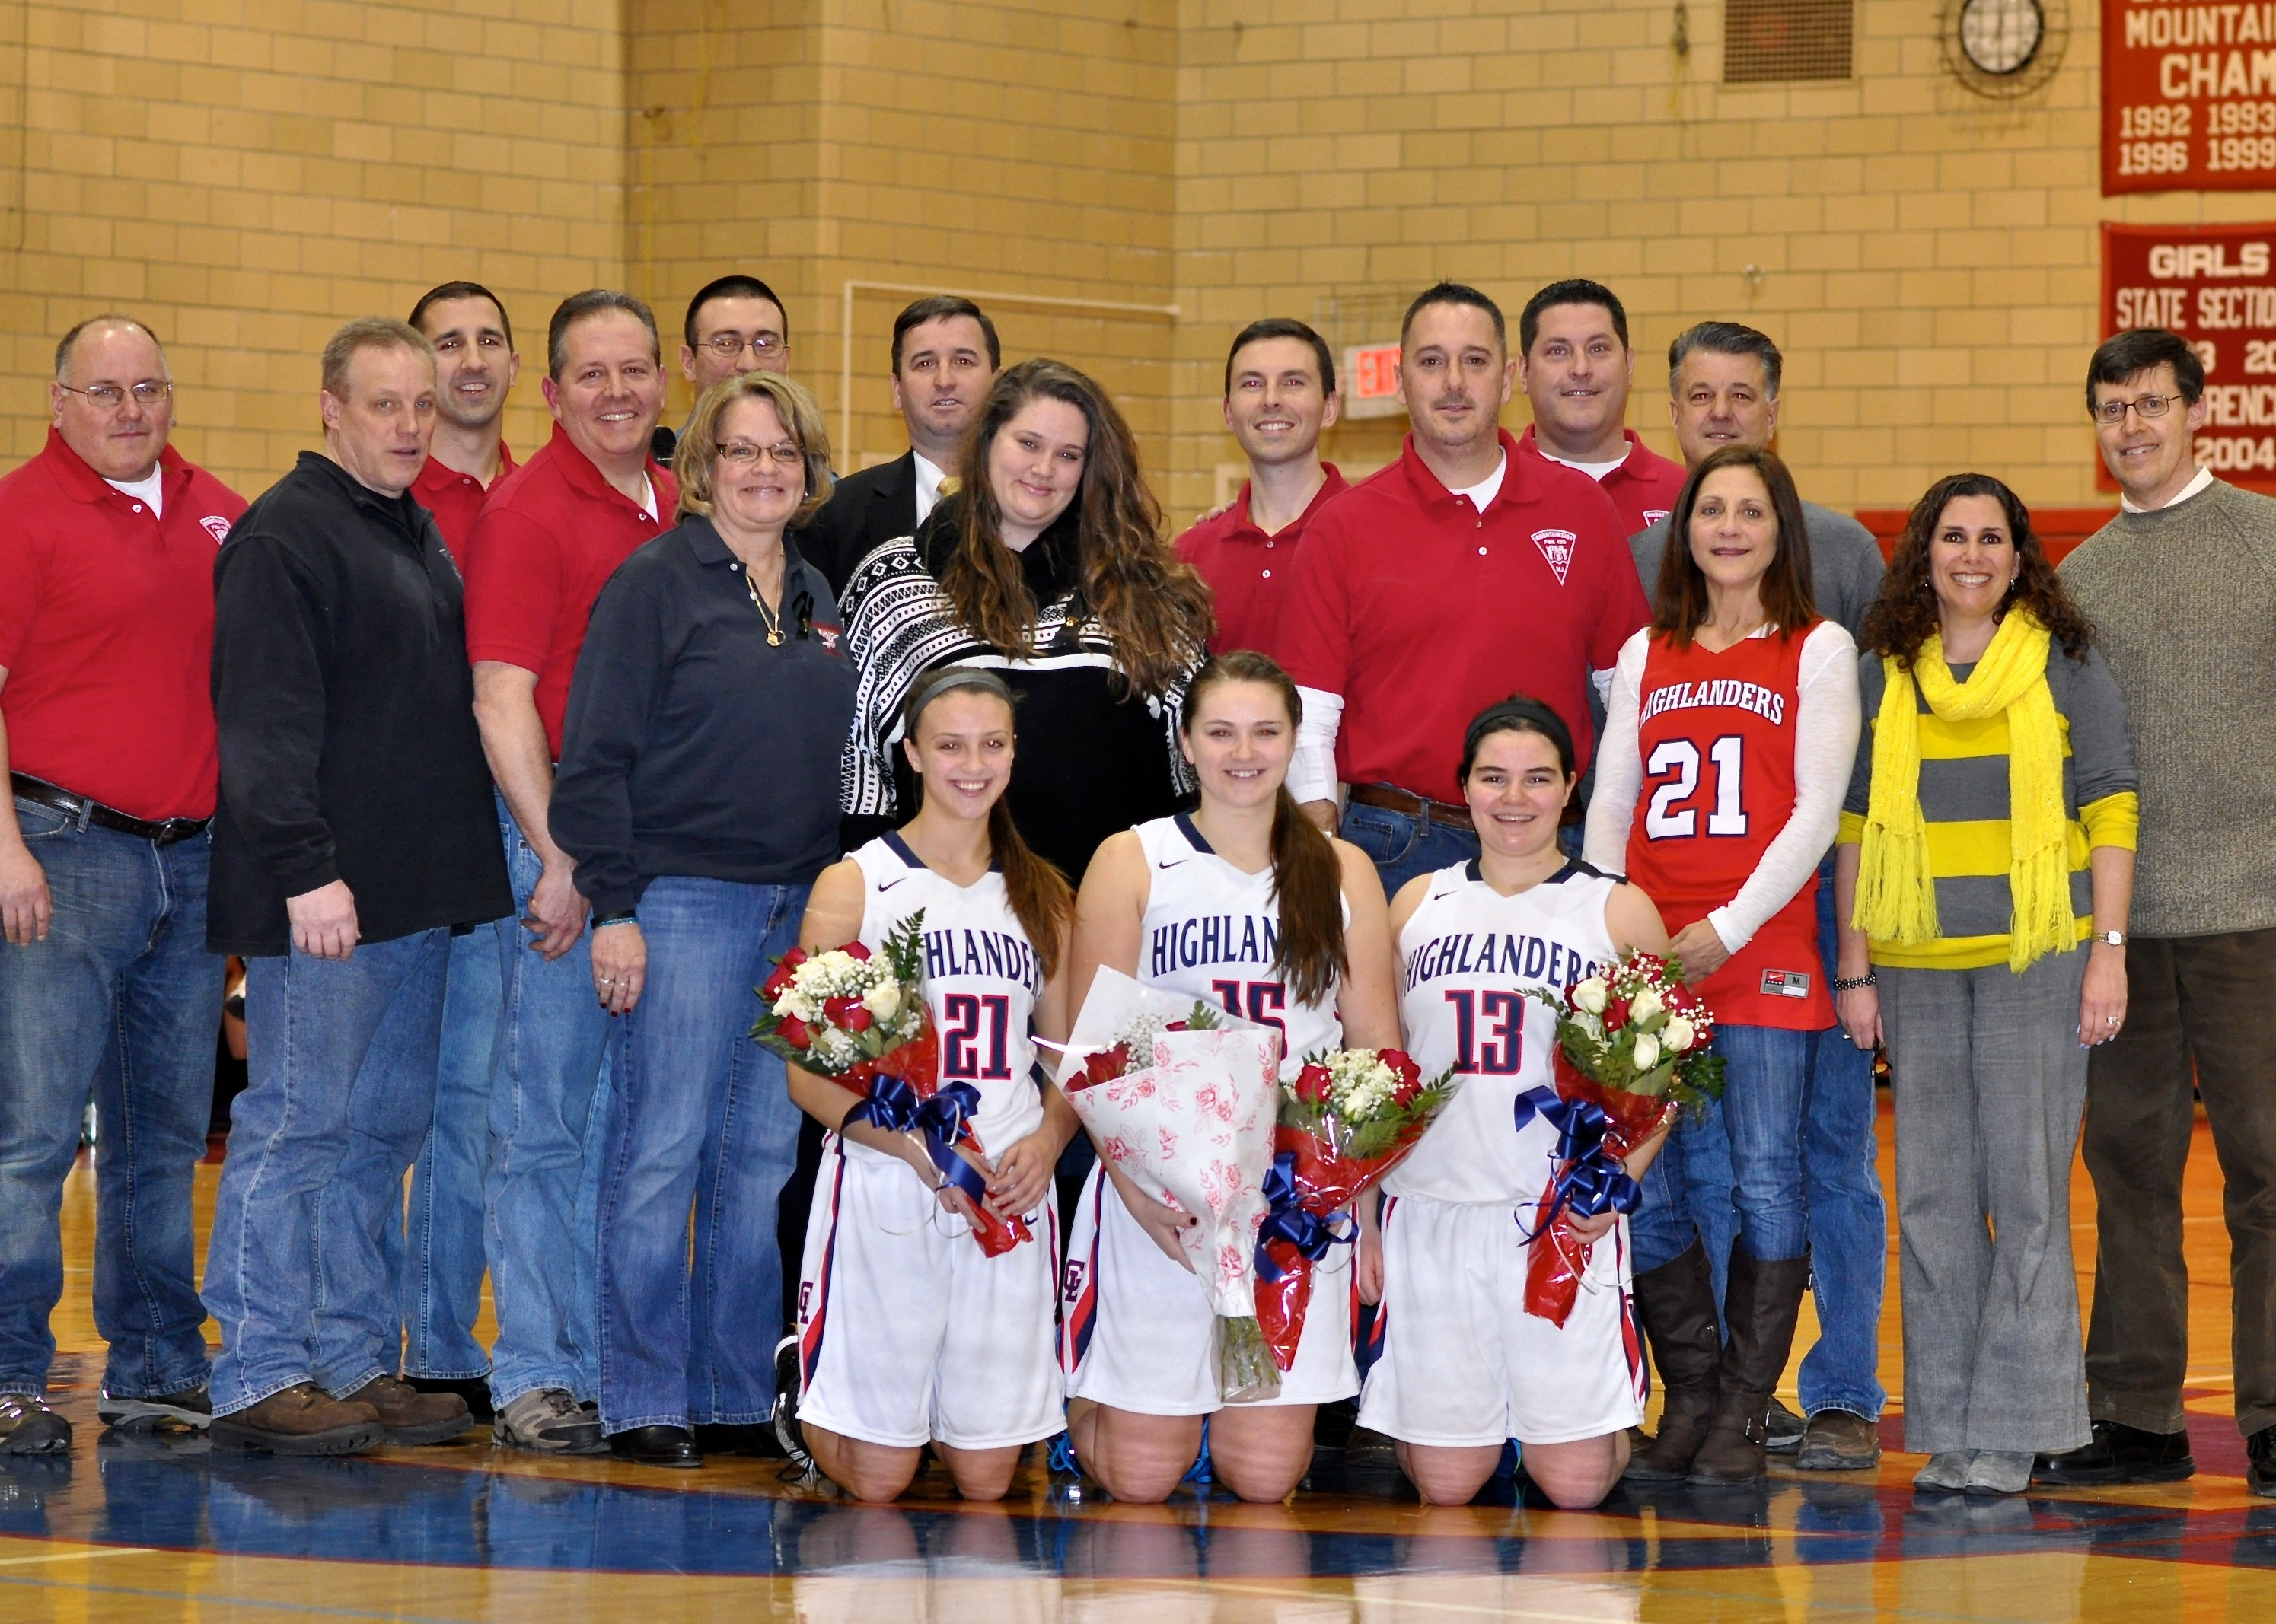 5a8eed5b191fa67d83f4_Sara_Dilly__Courney_Osieja_and_Hayley_Berliner_with_their_families_and_the_Mountainside_Police_Officers.JPG